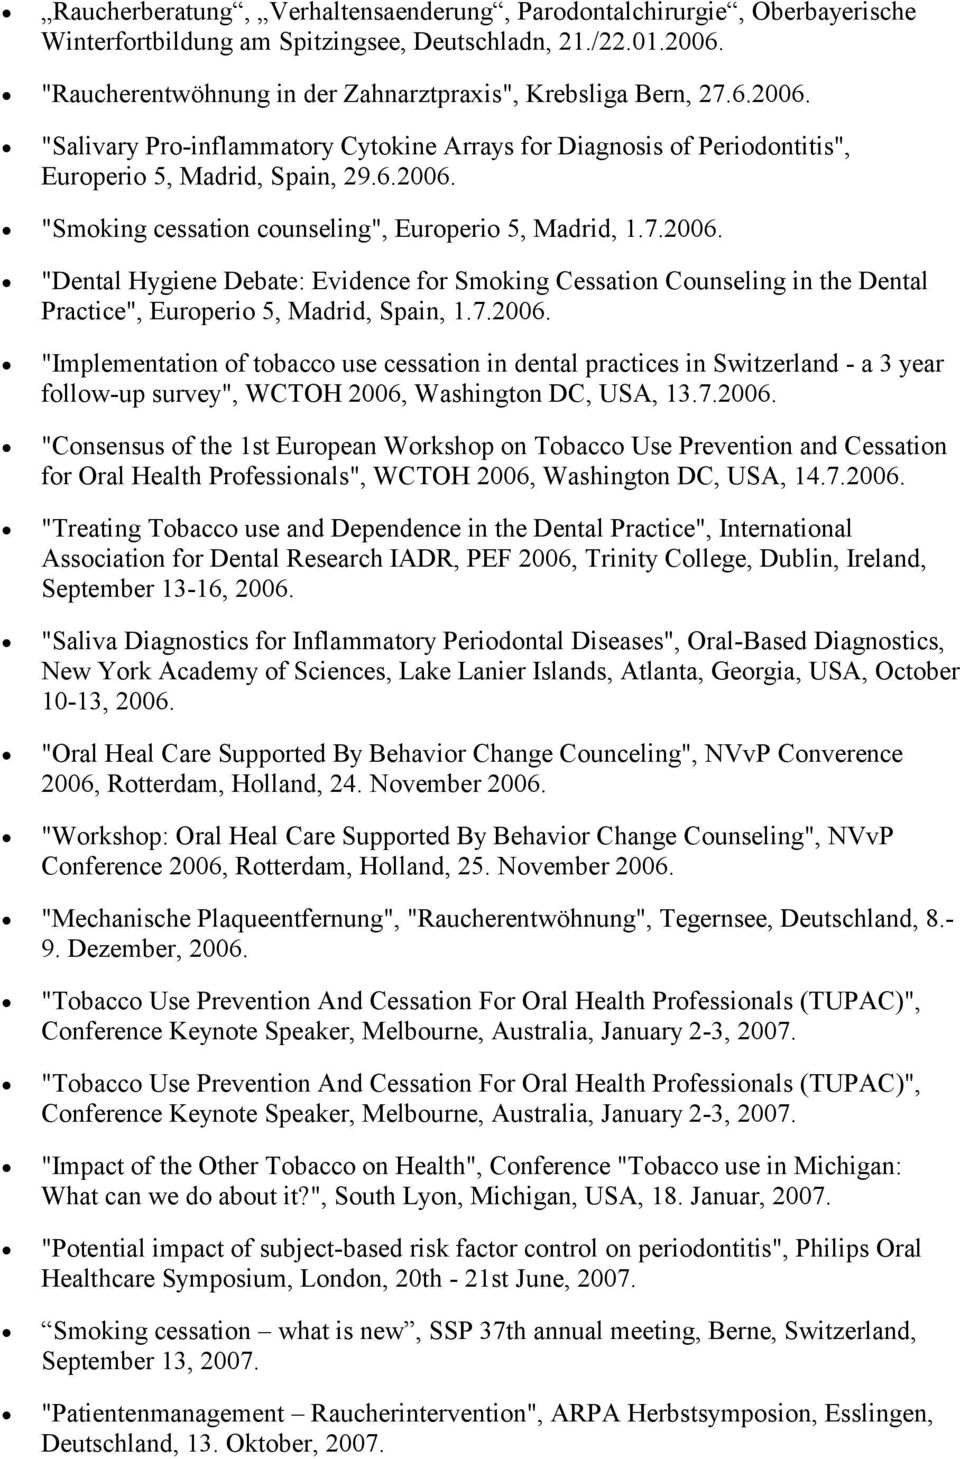 "7.2006. ""Implementation of tobacco use cessation in dental practices in Switzerland - a 3 year follow-up survey"", WCTOH 2006, Washington DC, USA, 13.7.2006. ""Consensus of the 1st European Workshop on Tobacco Use Prevention and Cessation for Oral Health Professionals"", WCTOH 2006, Washington DC, USA, 14."